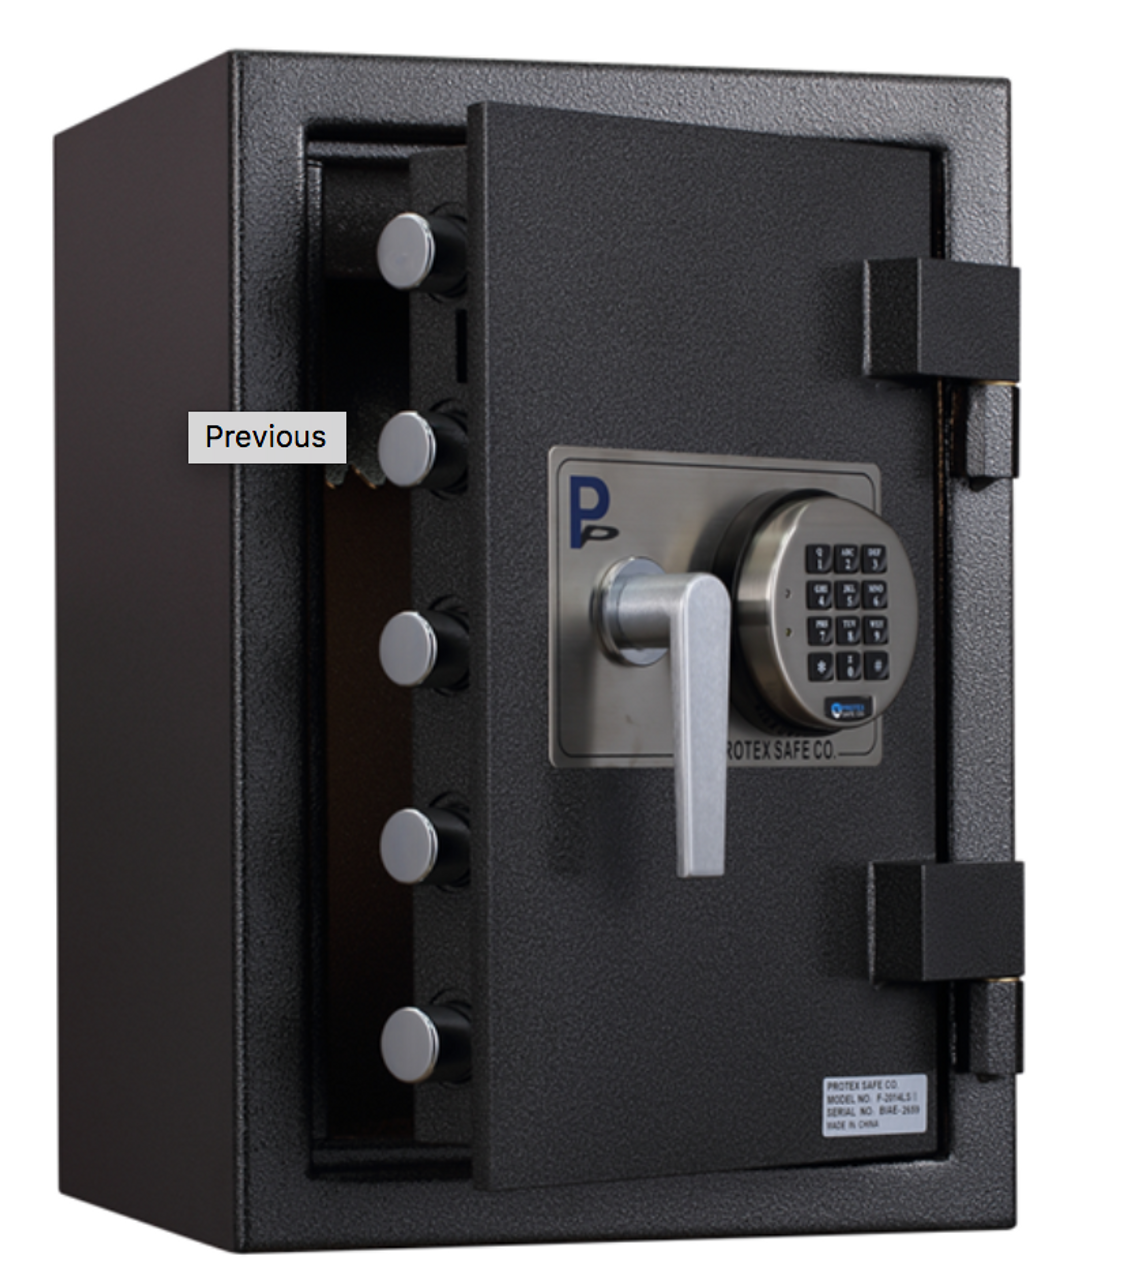 Envelope Drop Through Wall with Electronic Keypad Access with door open